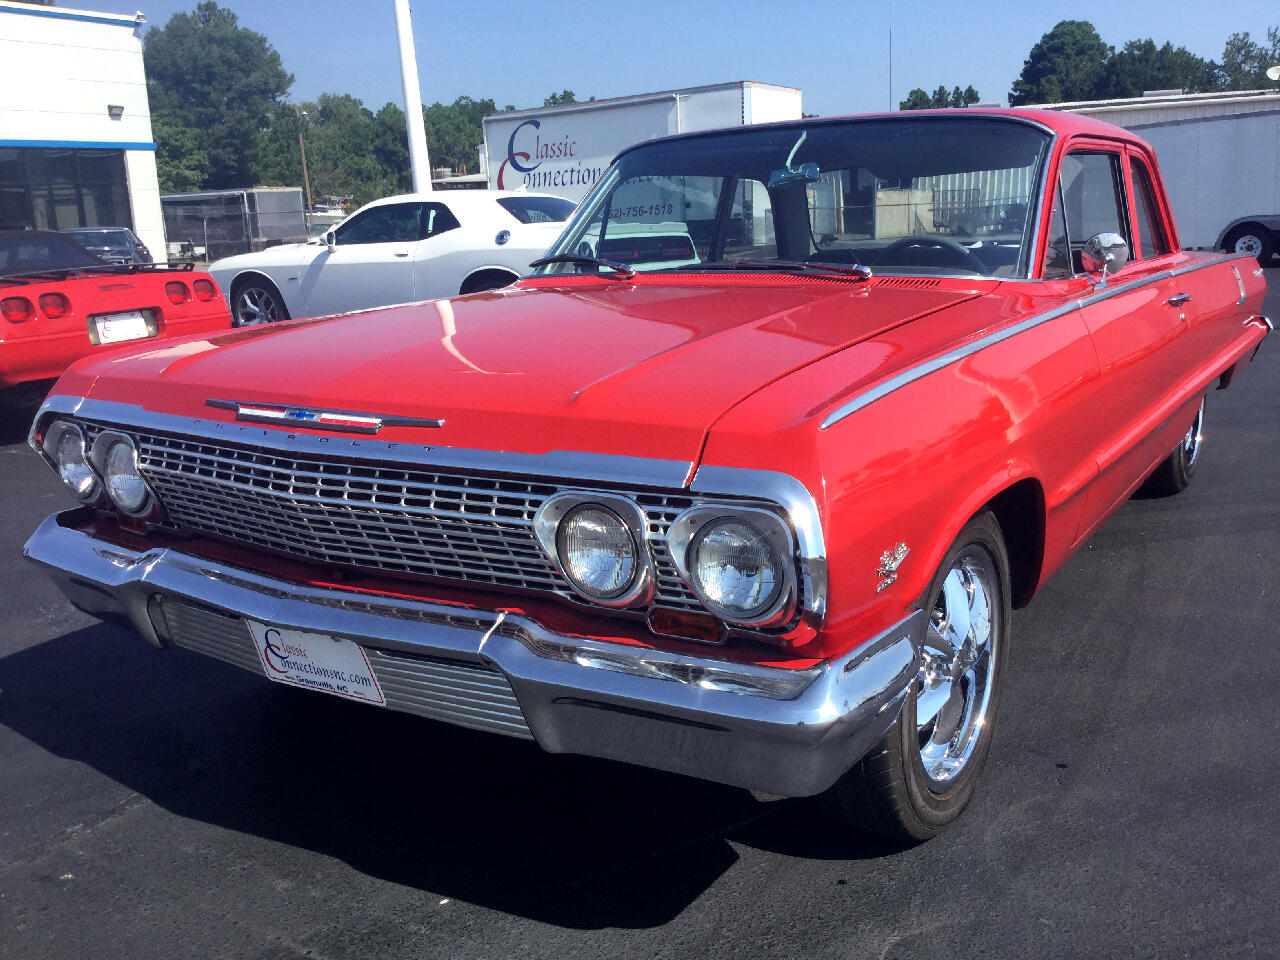 1963 Chevrolet Biscayne 2 door